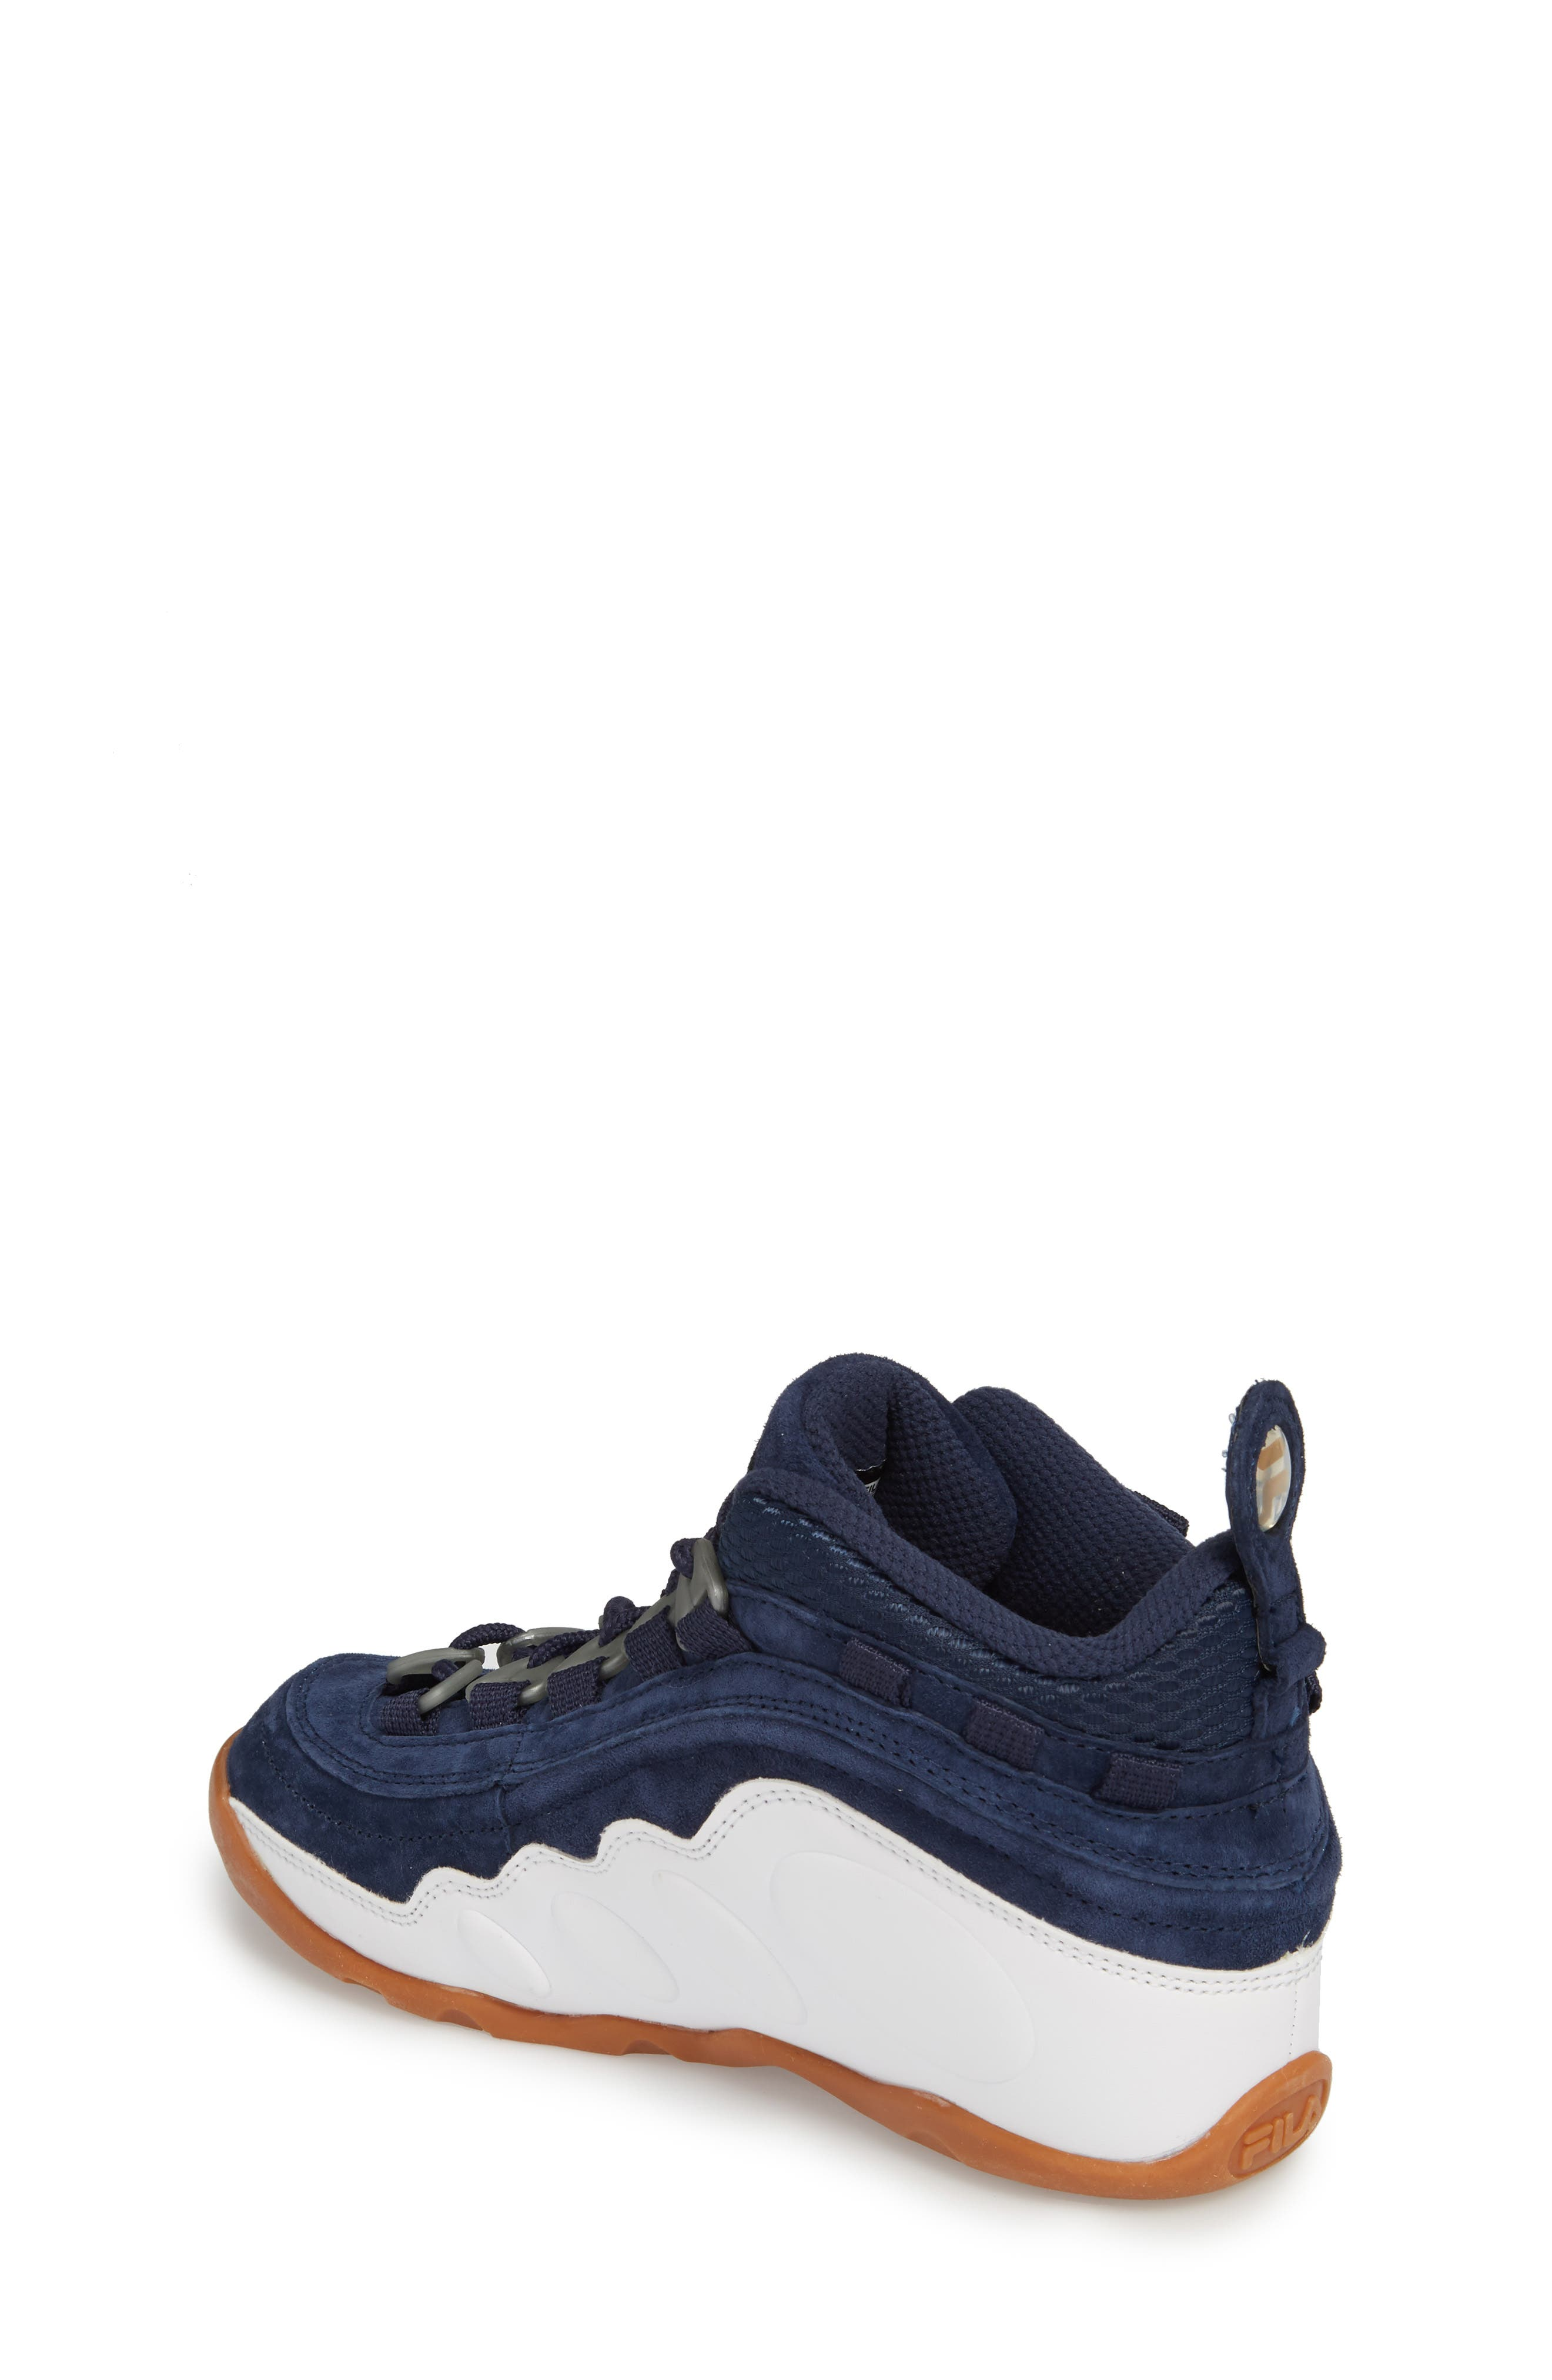 FILA, Bubbles Mid Top Sneaker Boot, Alternate thumbnail 2, color, NAVY/ GOLD/ WHITE